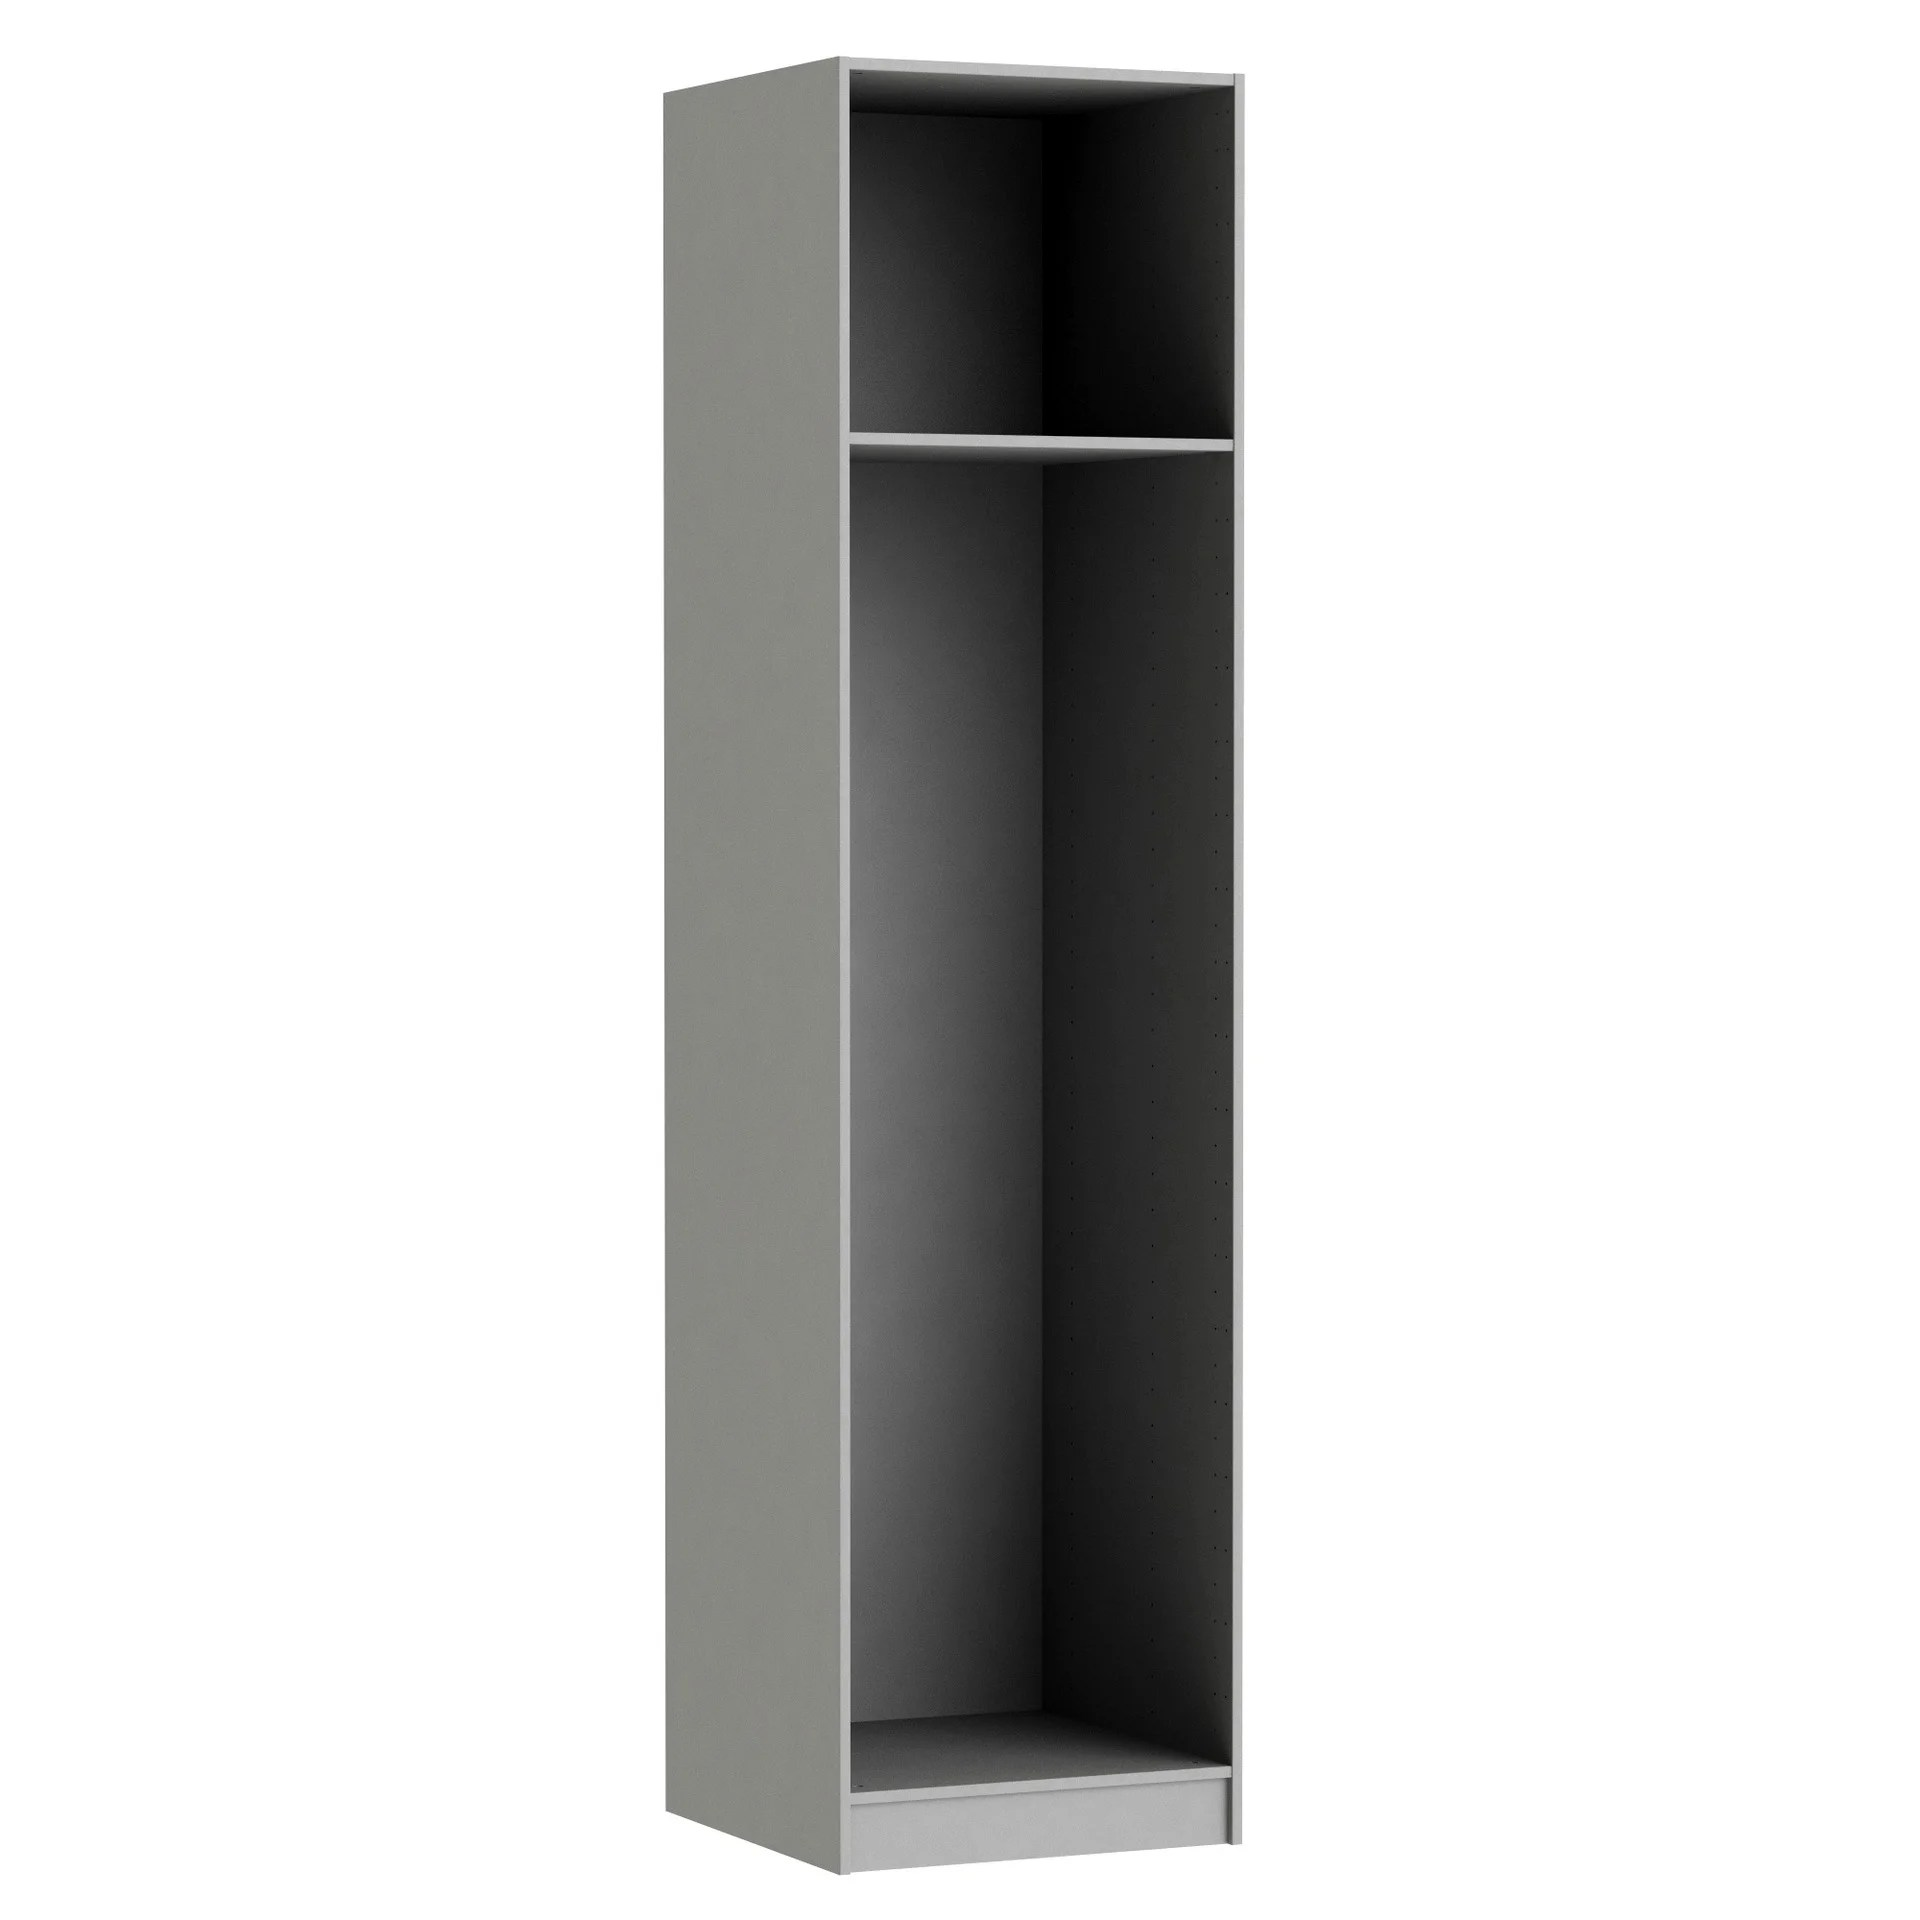 Caisson Armoire Spaceo Home Anthracite H 240 X L 60 X P 60 Cm Leroy Merlin